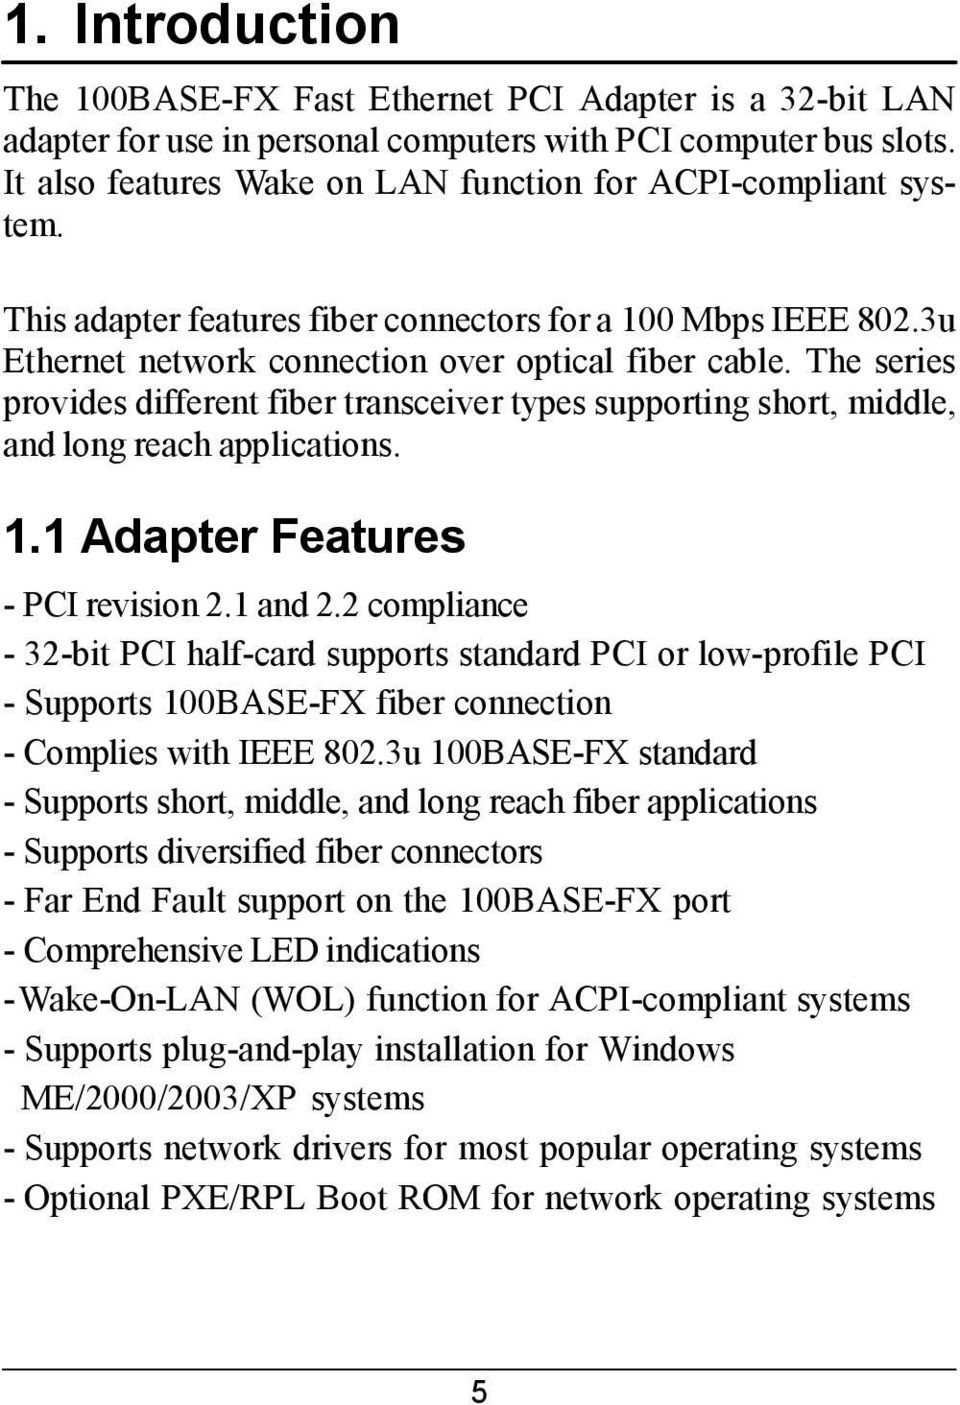 The series provides different fiber transceiver types supporting short, middle, and long reach applications. 1.1 Adapter Features - PCI revision 2.1 and 2.